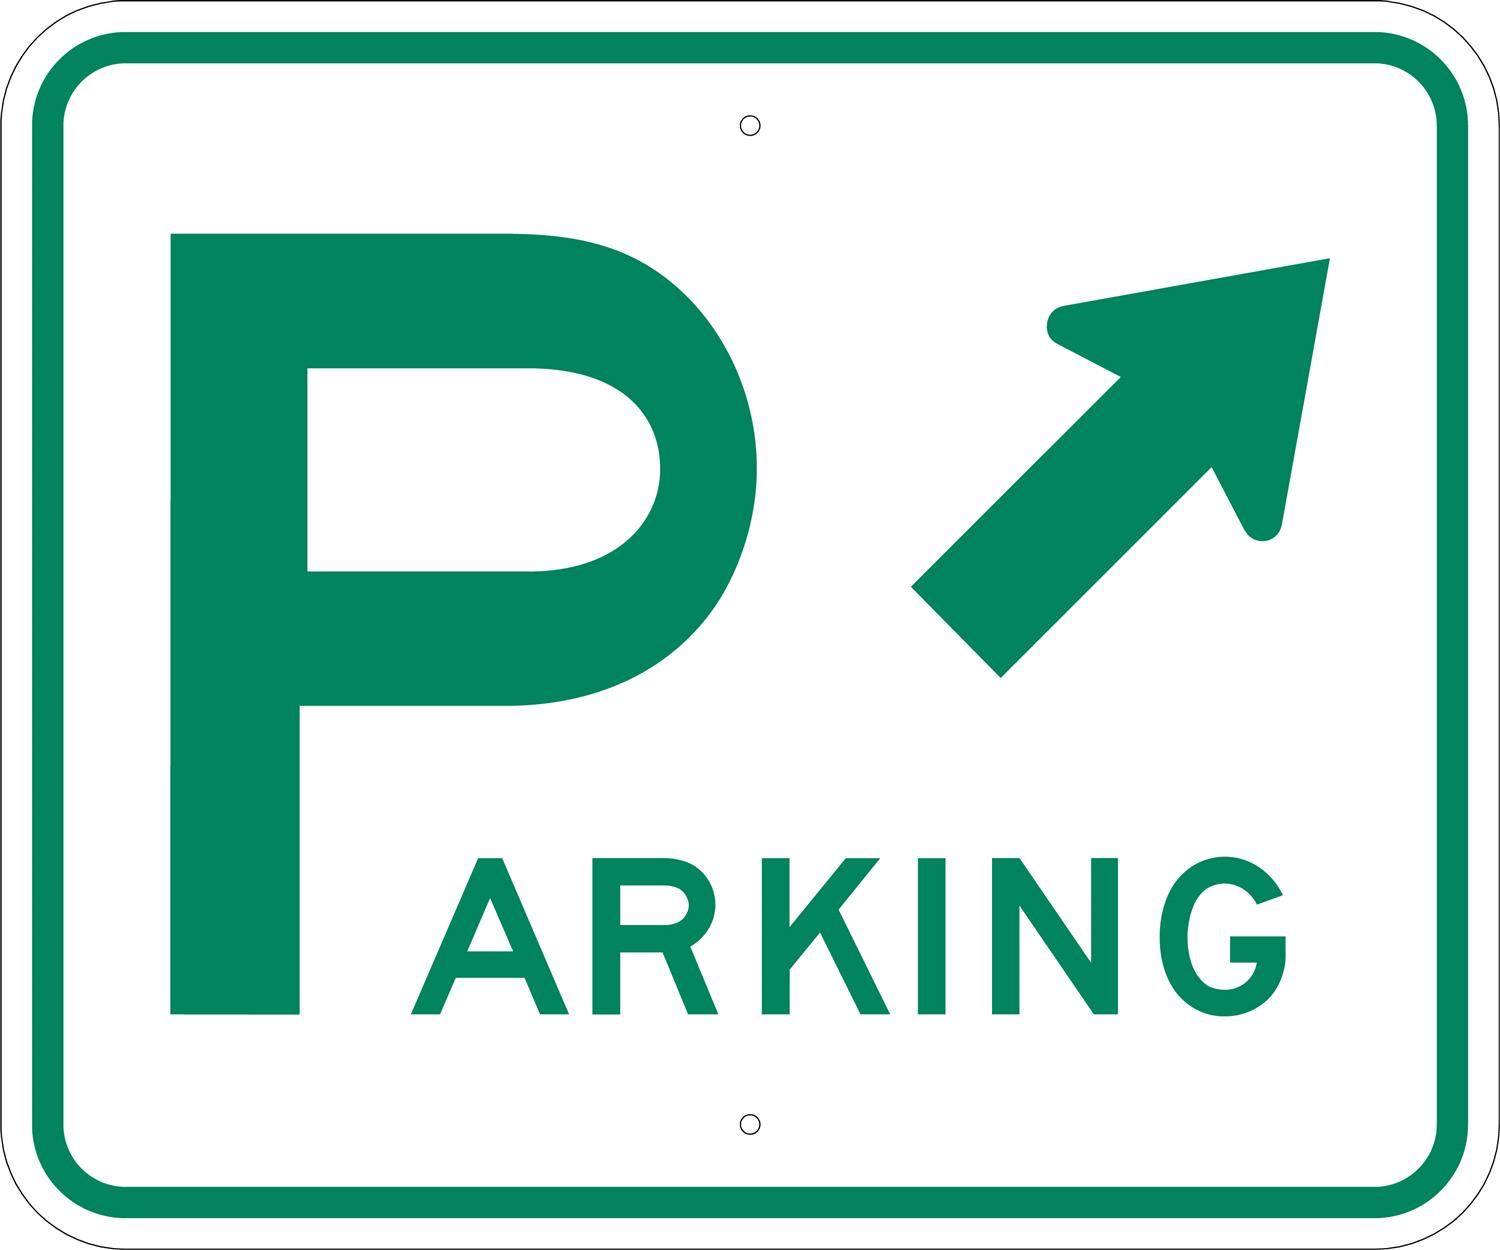 Parking, with an arrow